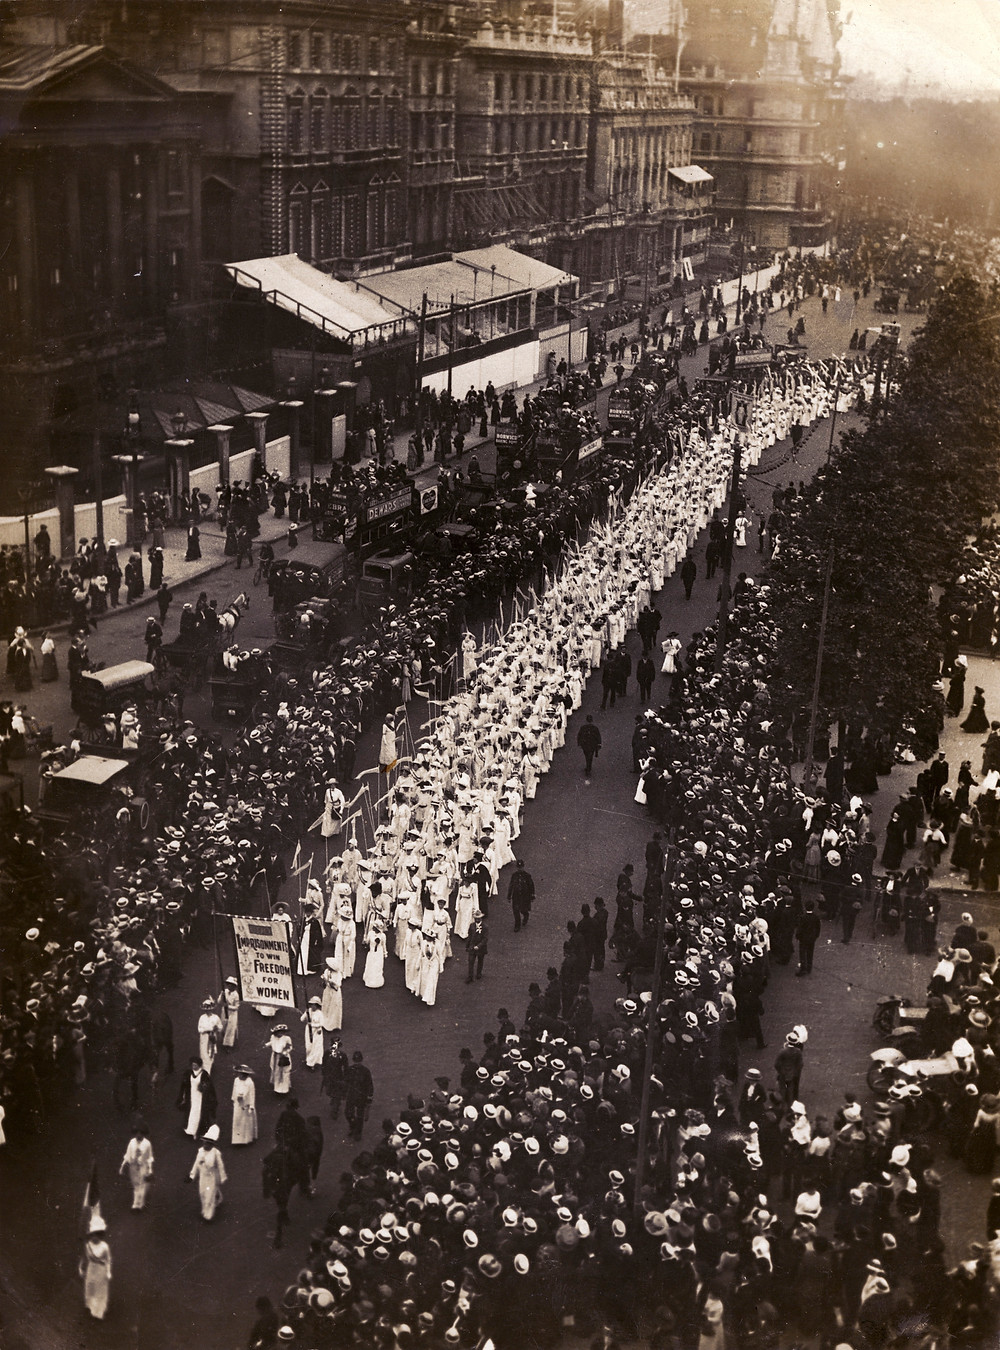 The procession snaked for miles through the city streets. Source: The Women's Library (LSE).